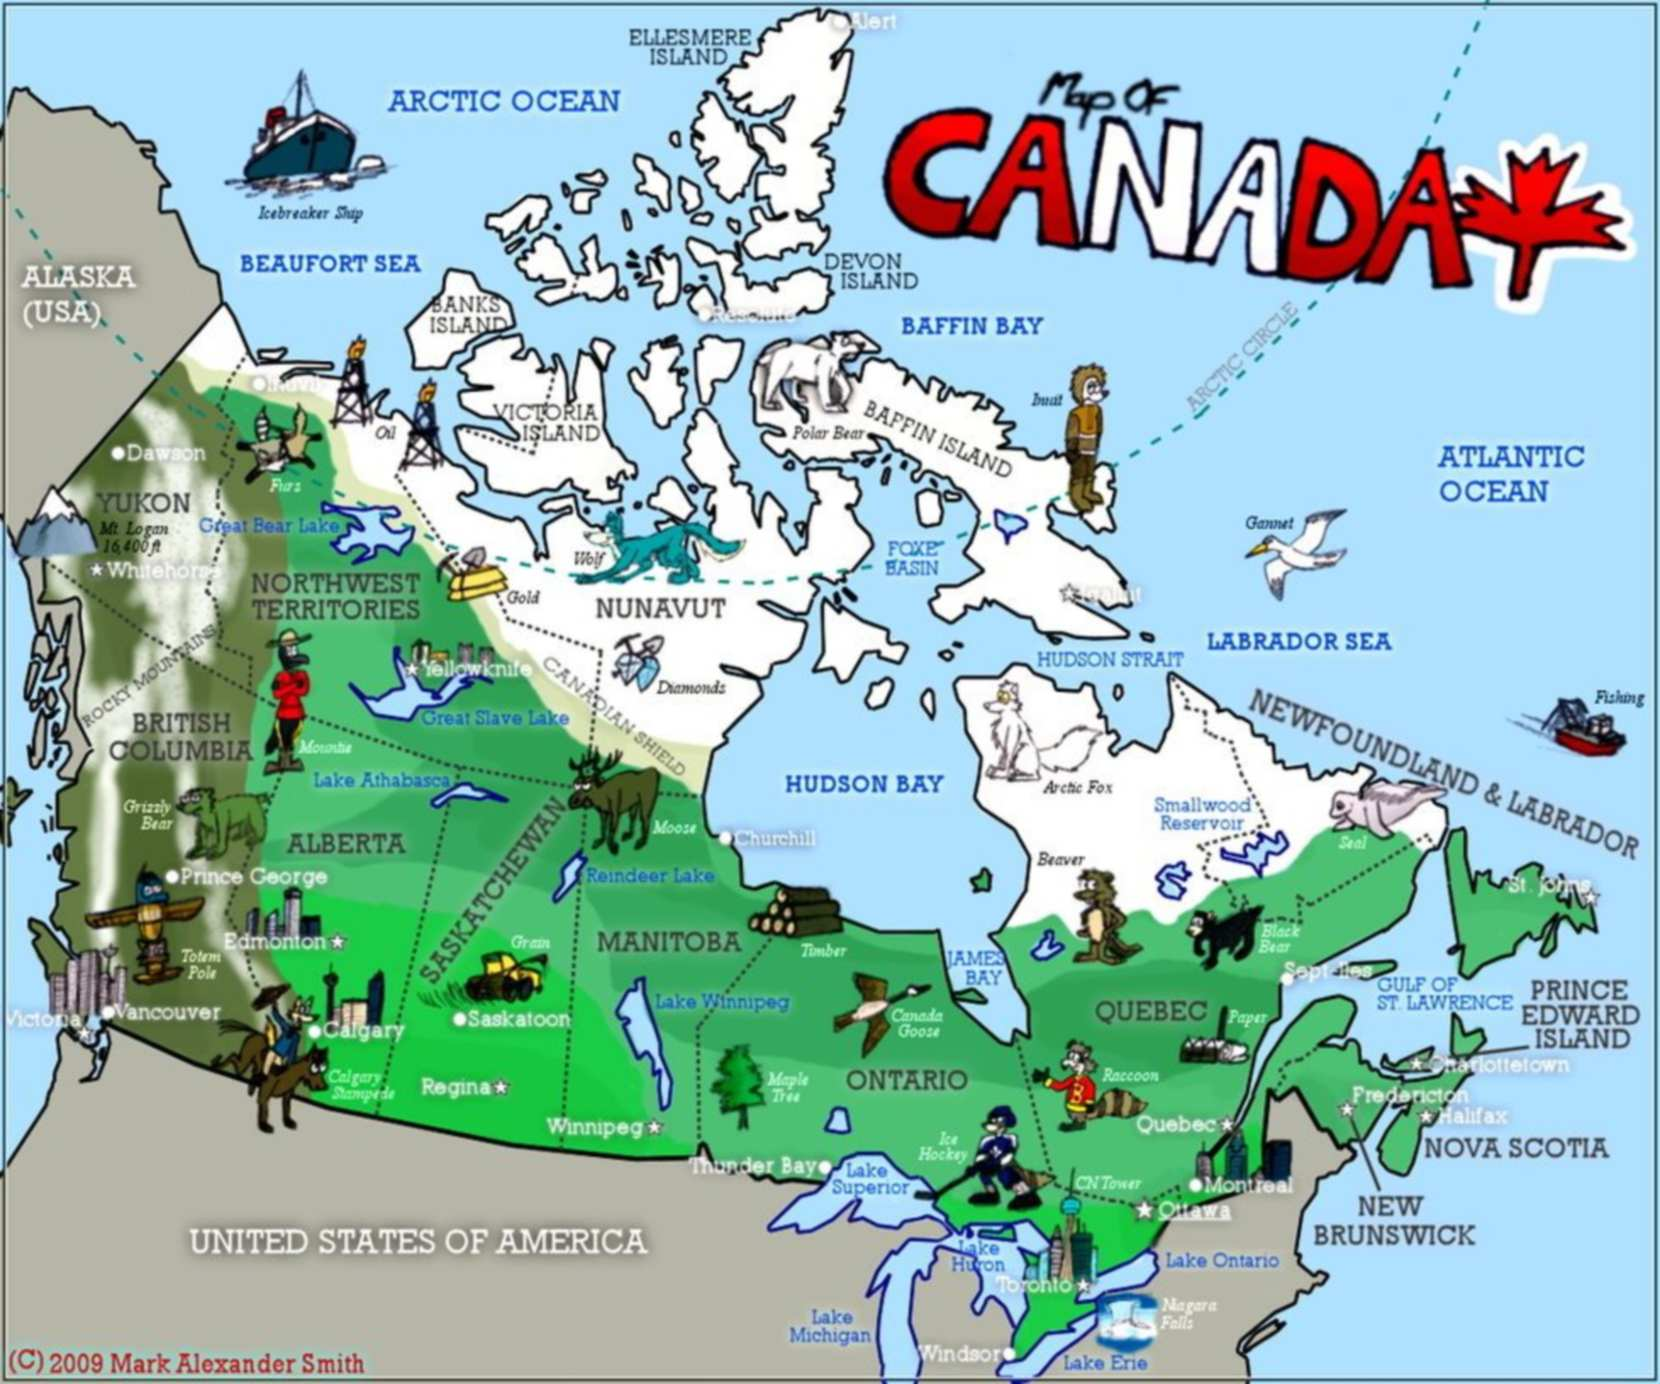 Canada Quiz Image Of The Map Of Canada Easy Science For Kids - Map of canada quiz printable